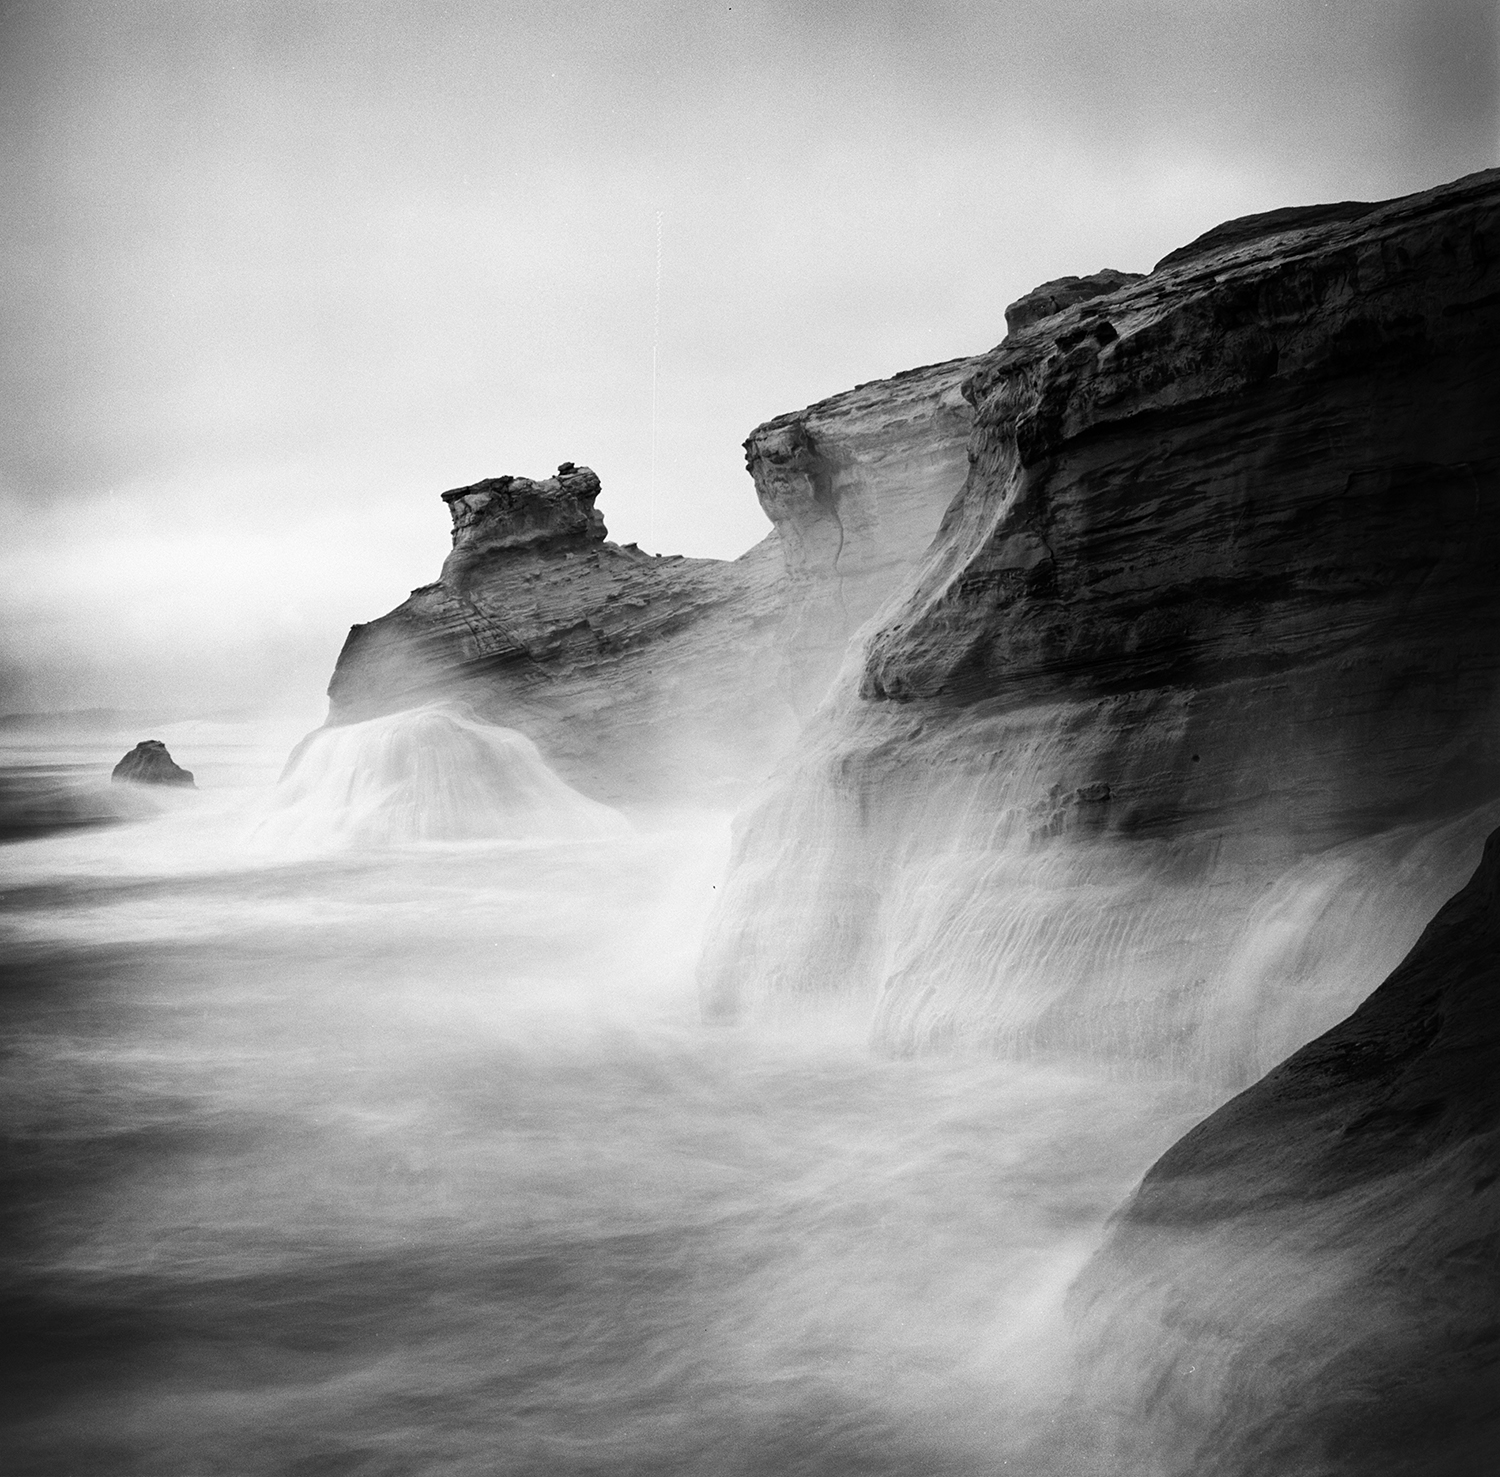 cape kiwanda cliffs crashing surf le2bw.jpg